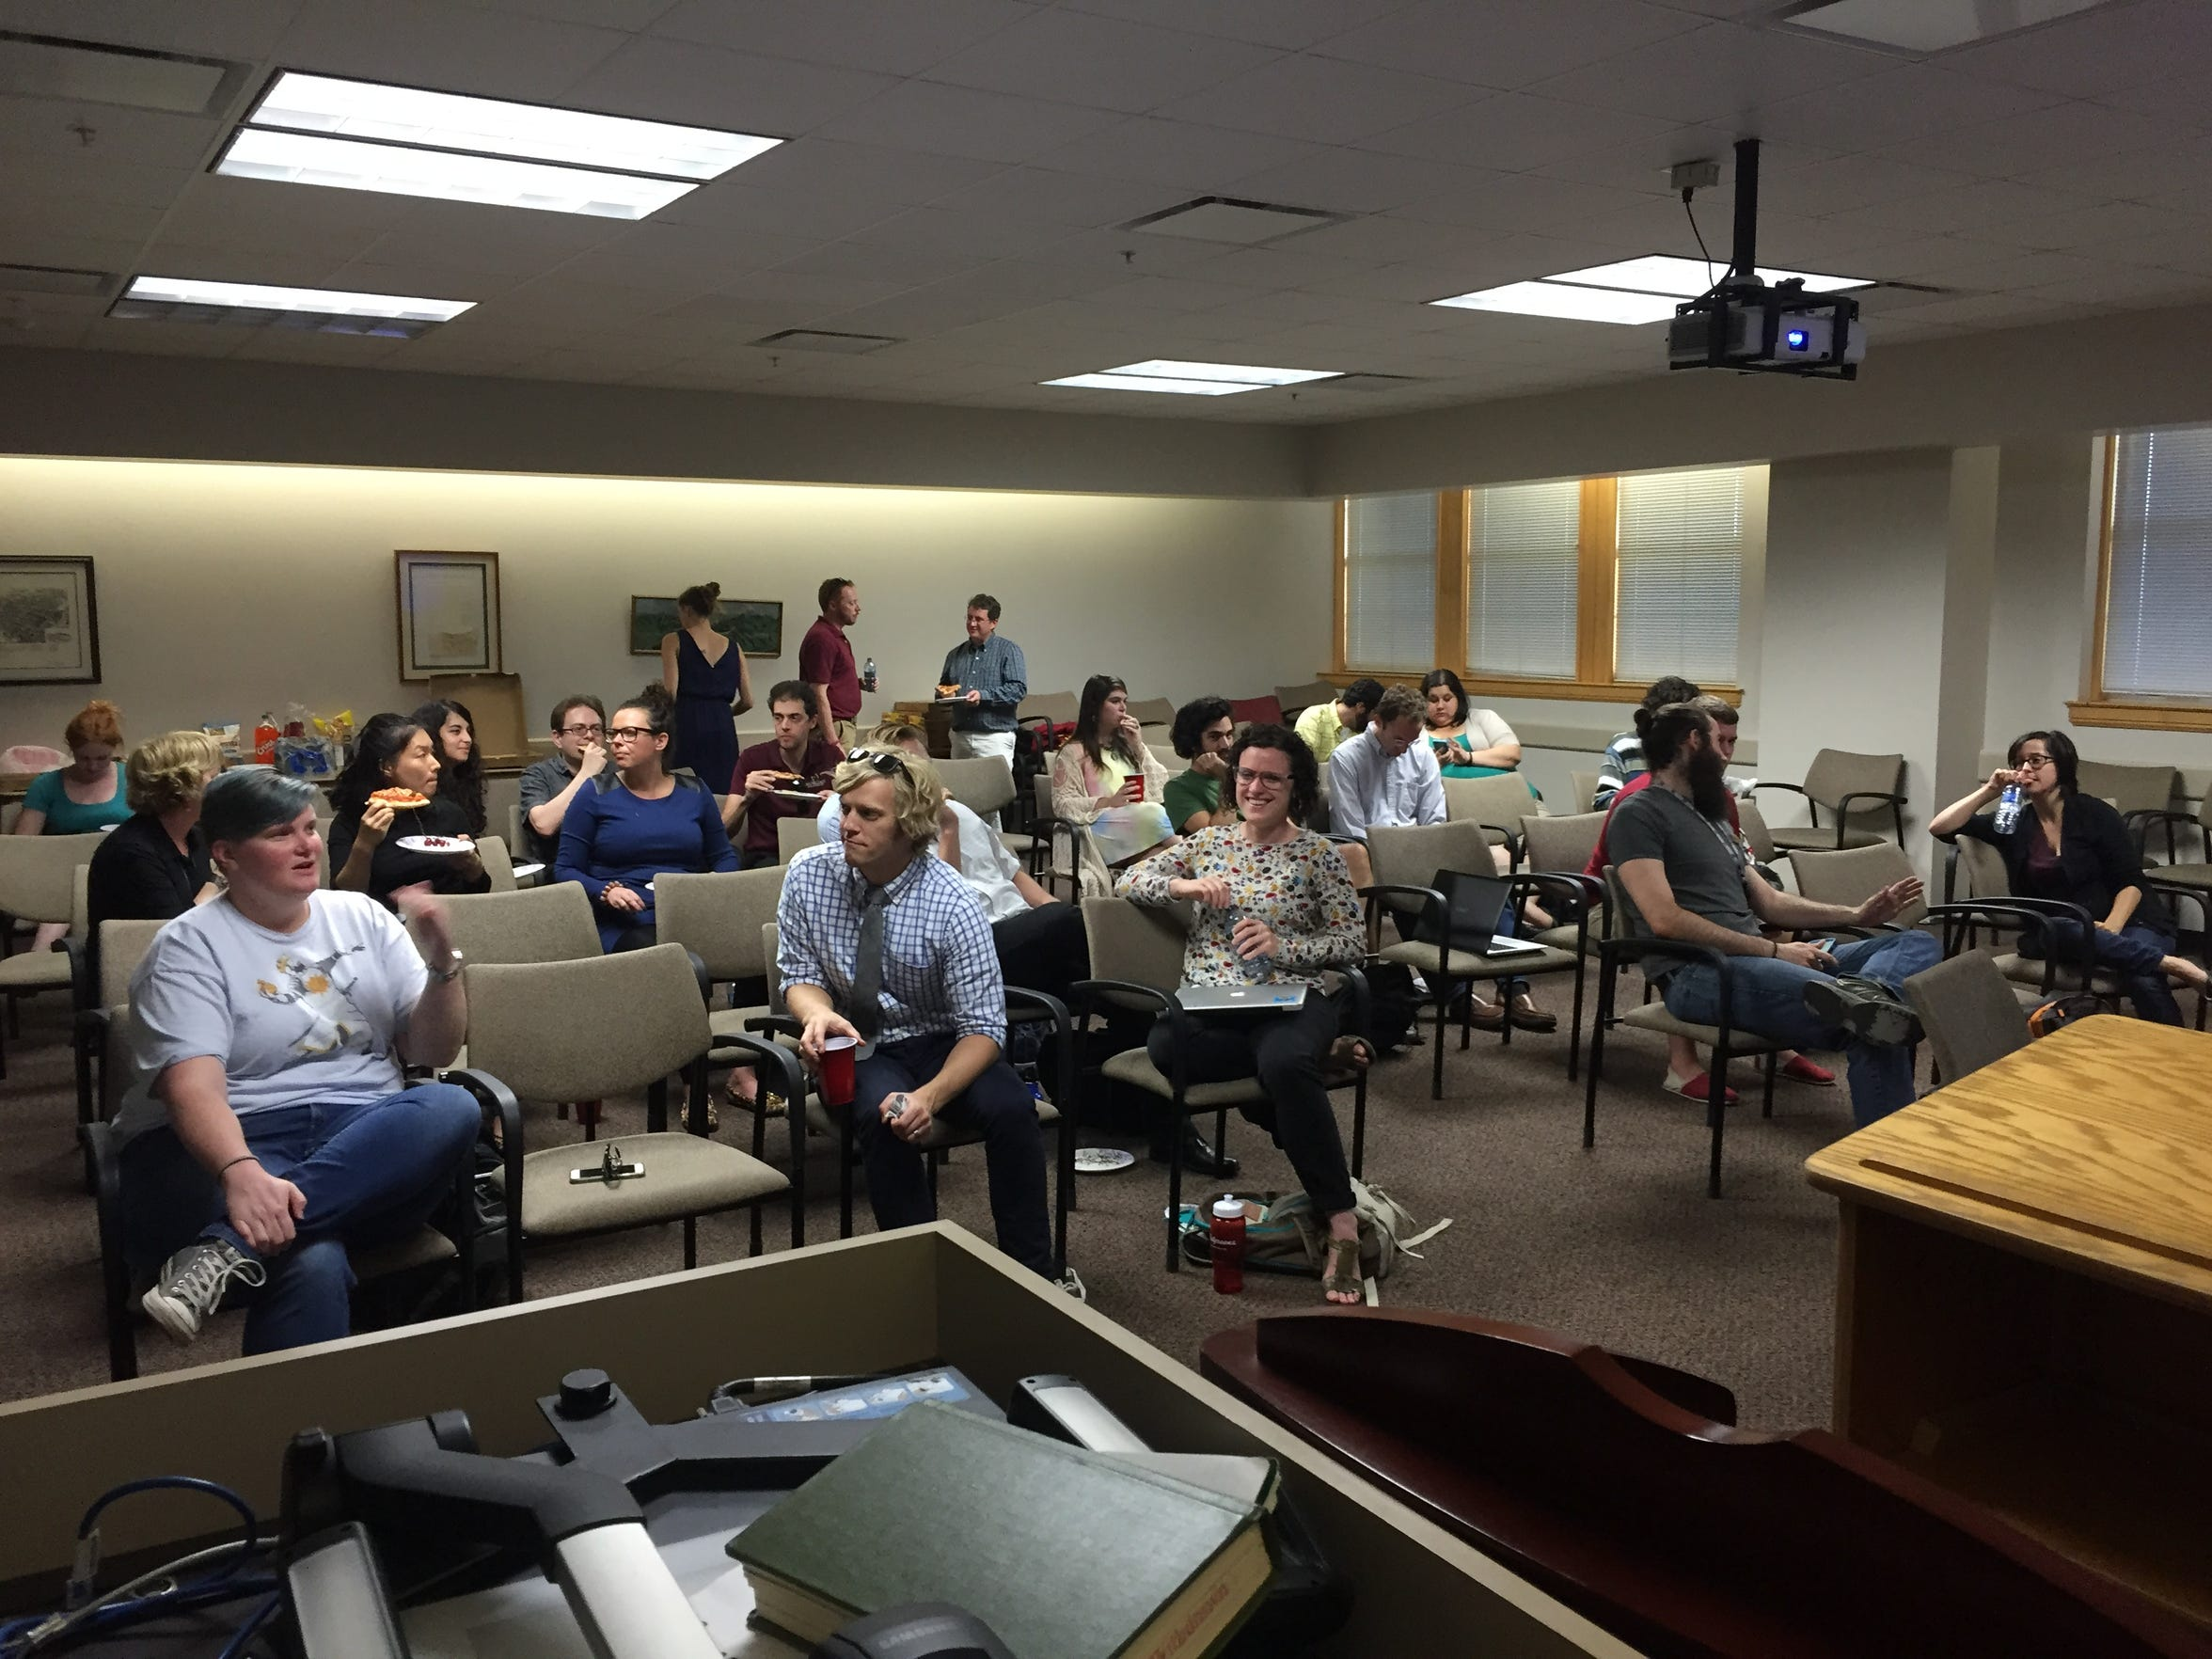 Graduate Assistants United hold a meeting to discuss issues related to teaching, pay and more.